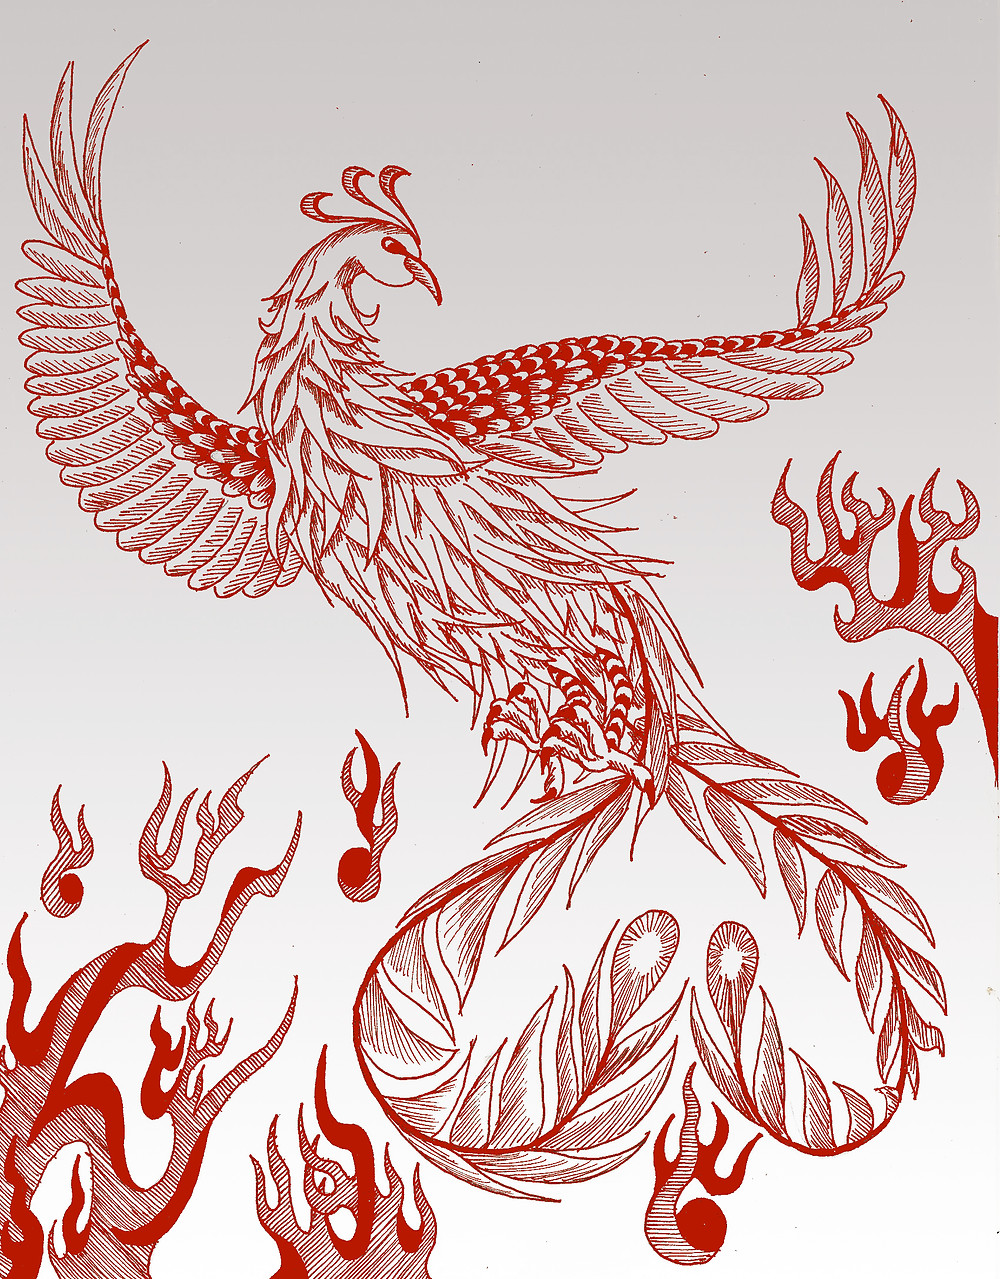 Phoenix bird for luck.